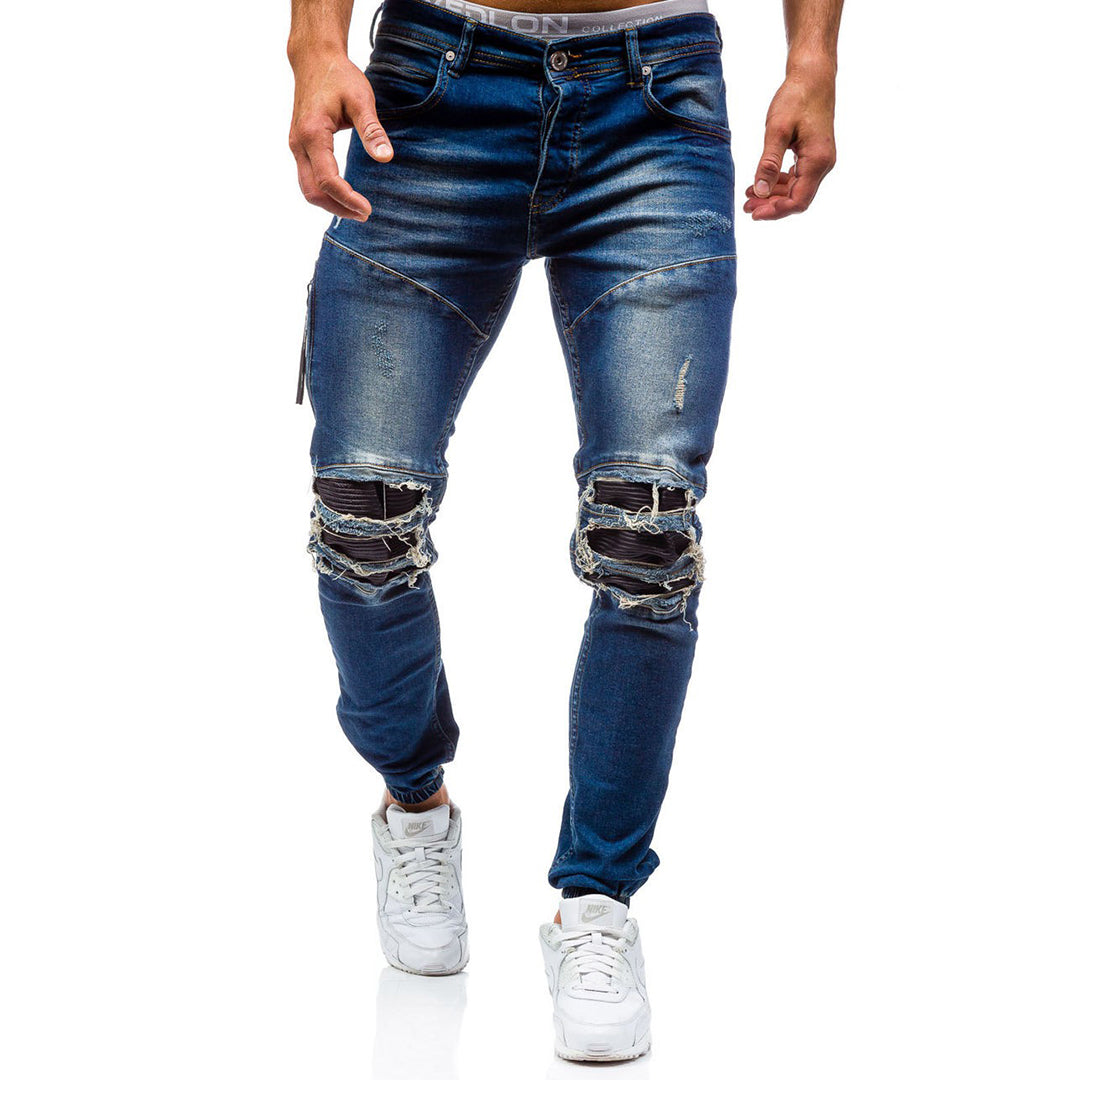 14b728935da Male Jeans Fashion Slim Beggar Hole Jeans Men Casual Pants Man Trouser –  Costbuys